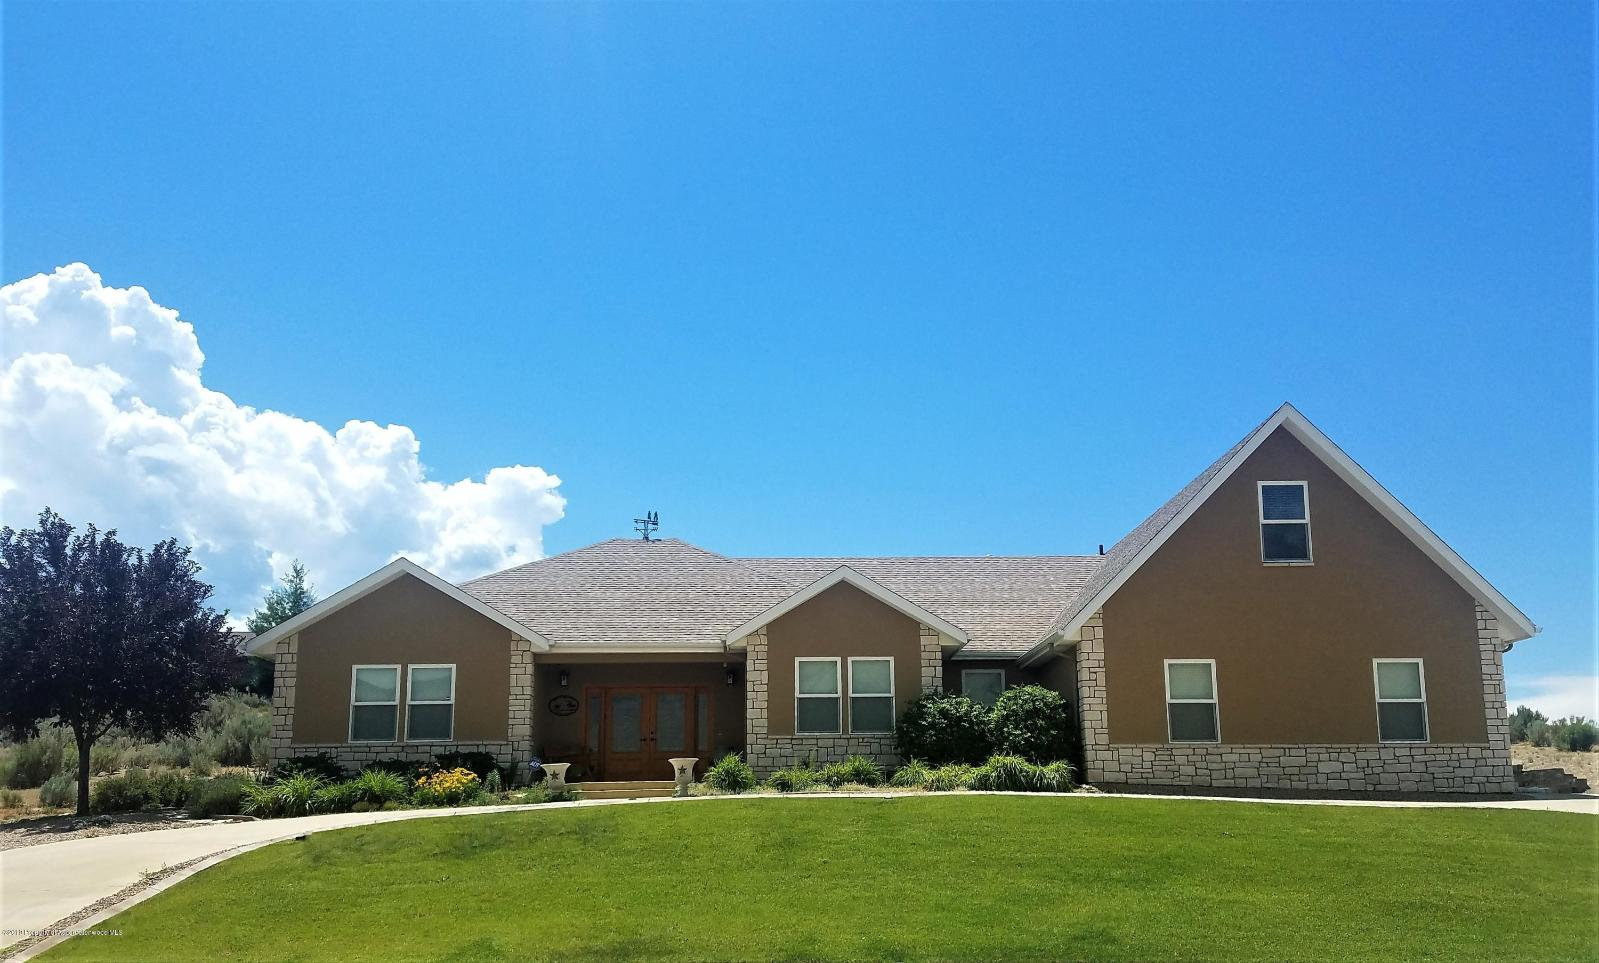 battlement mesa latin singles This single-family home is located at 177 battlement creek trl, parachute, co is currently for sale and has been listed on trulia for 104 days 177 battlement creek trl3 beds, 2 baths and approximately 1,992 square feet.